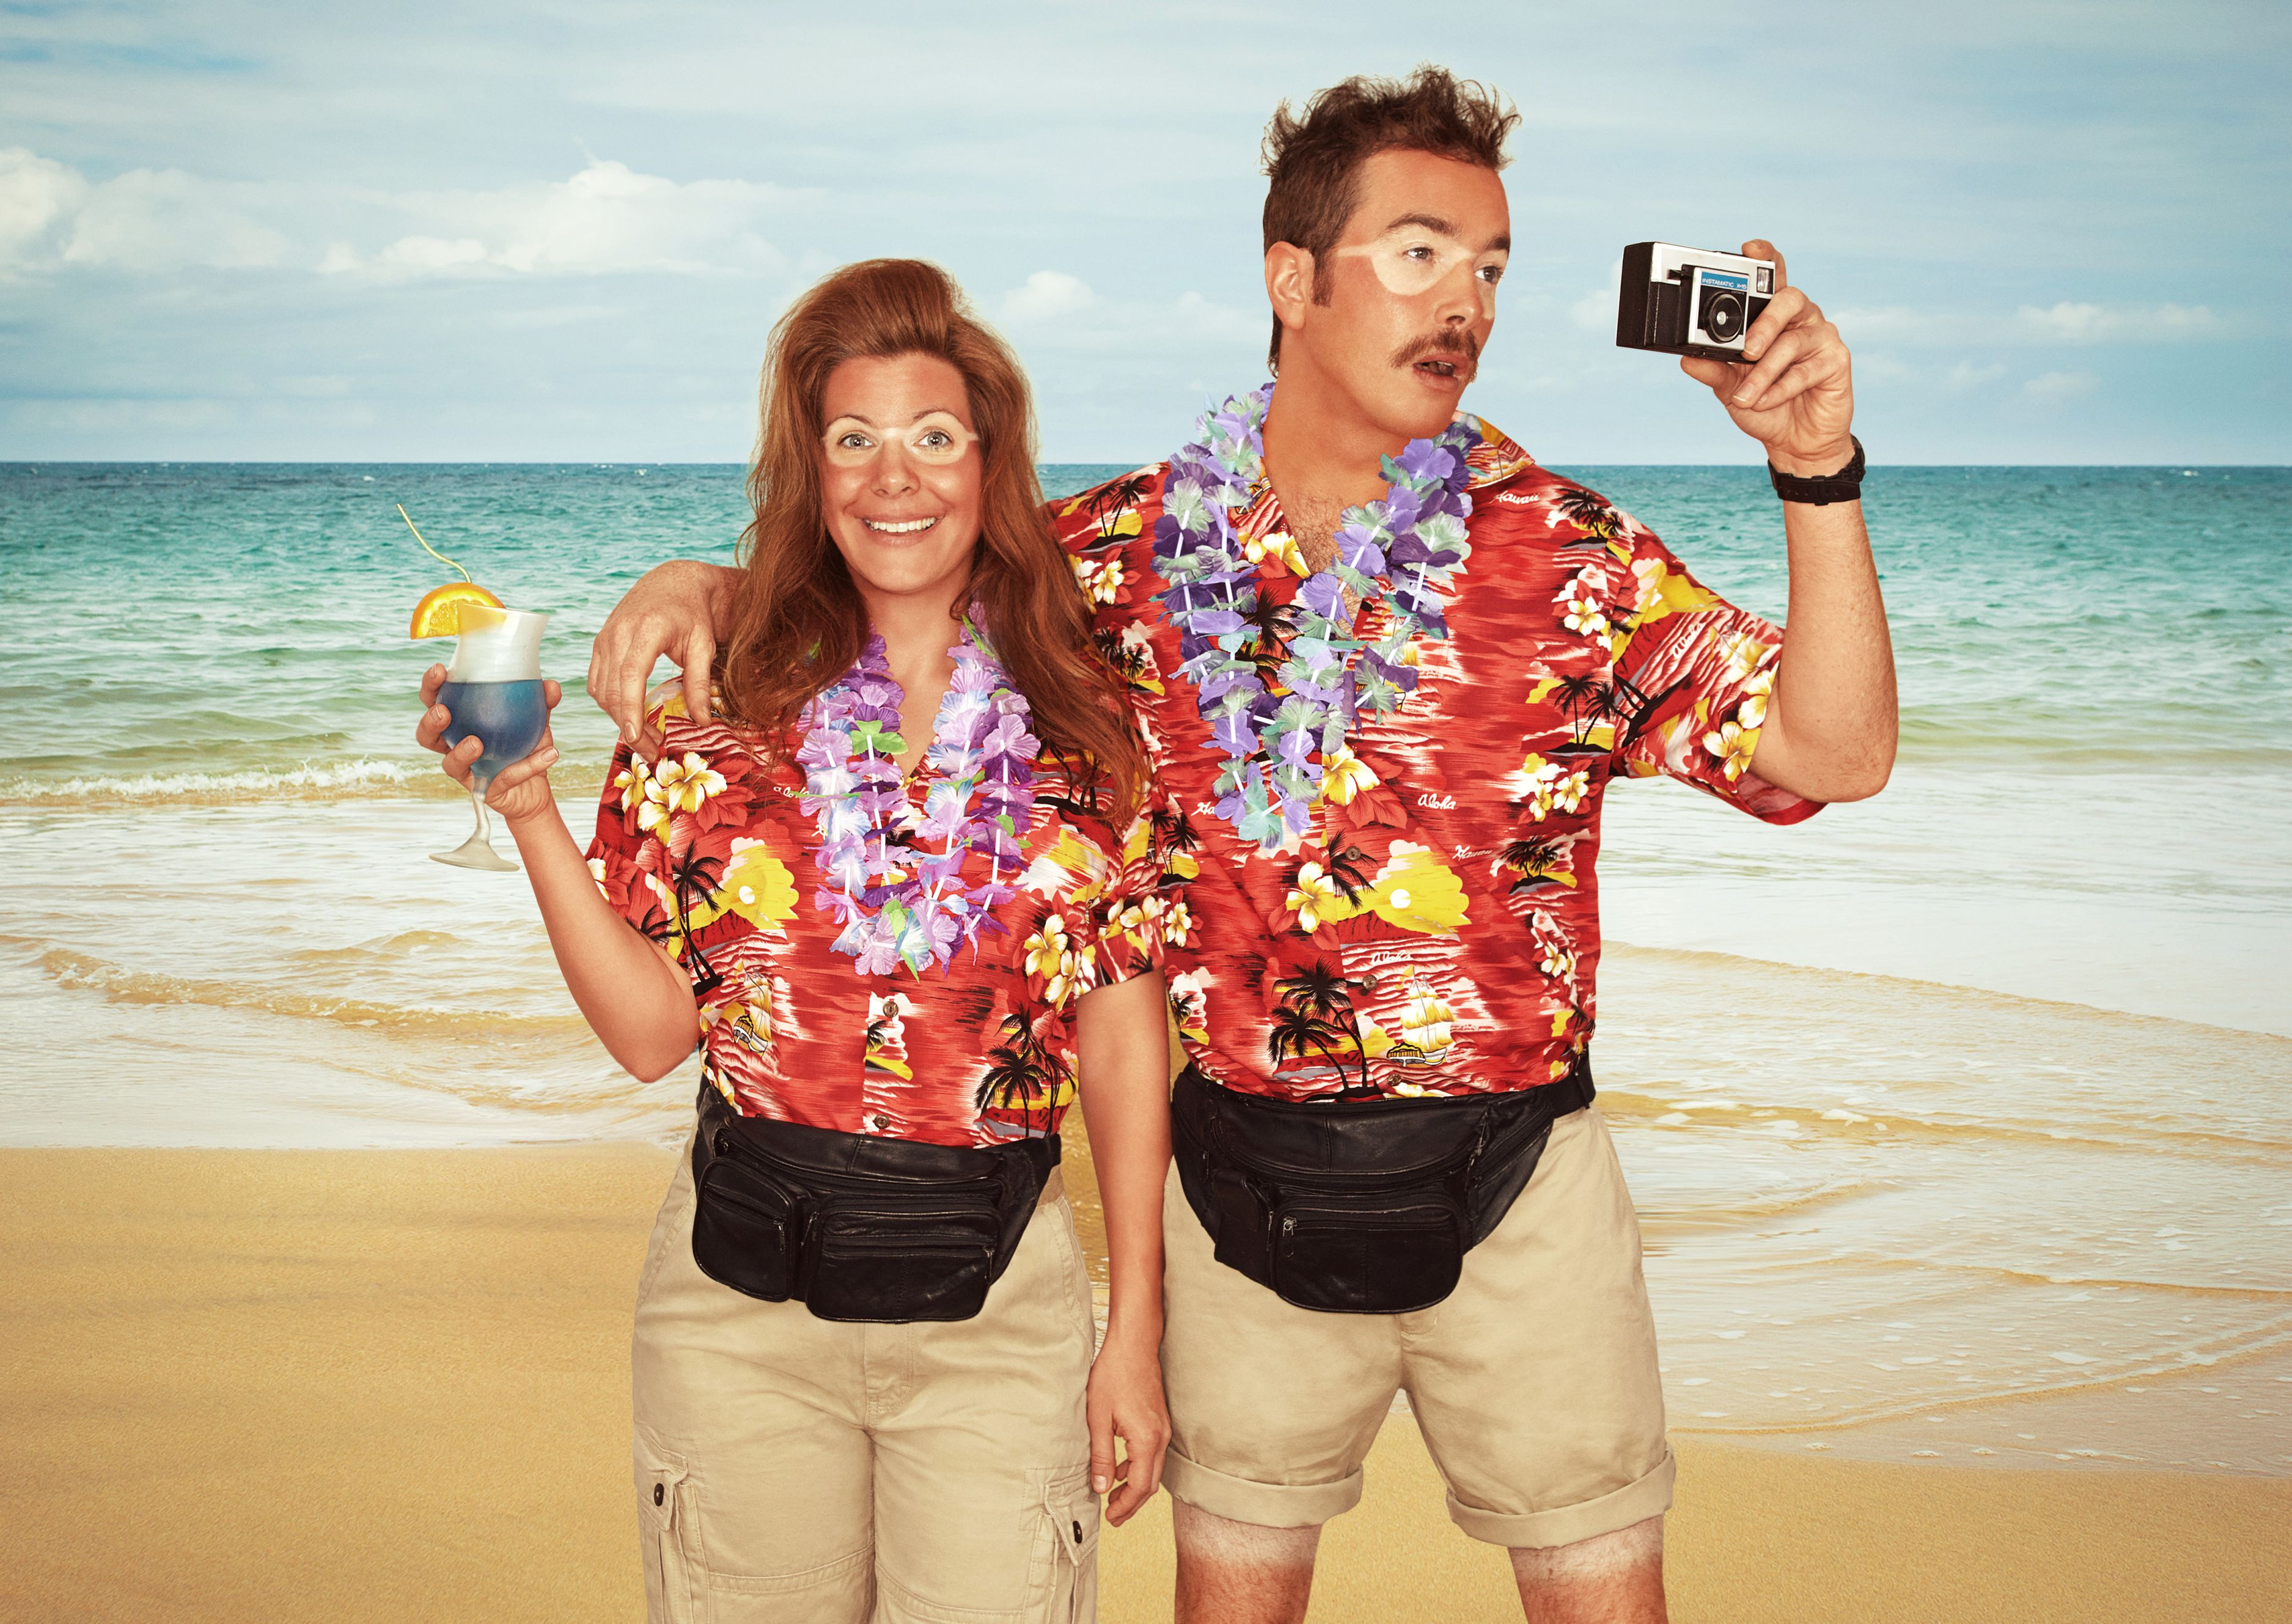 Luau Party: What Will You Wear?